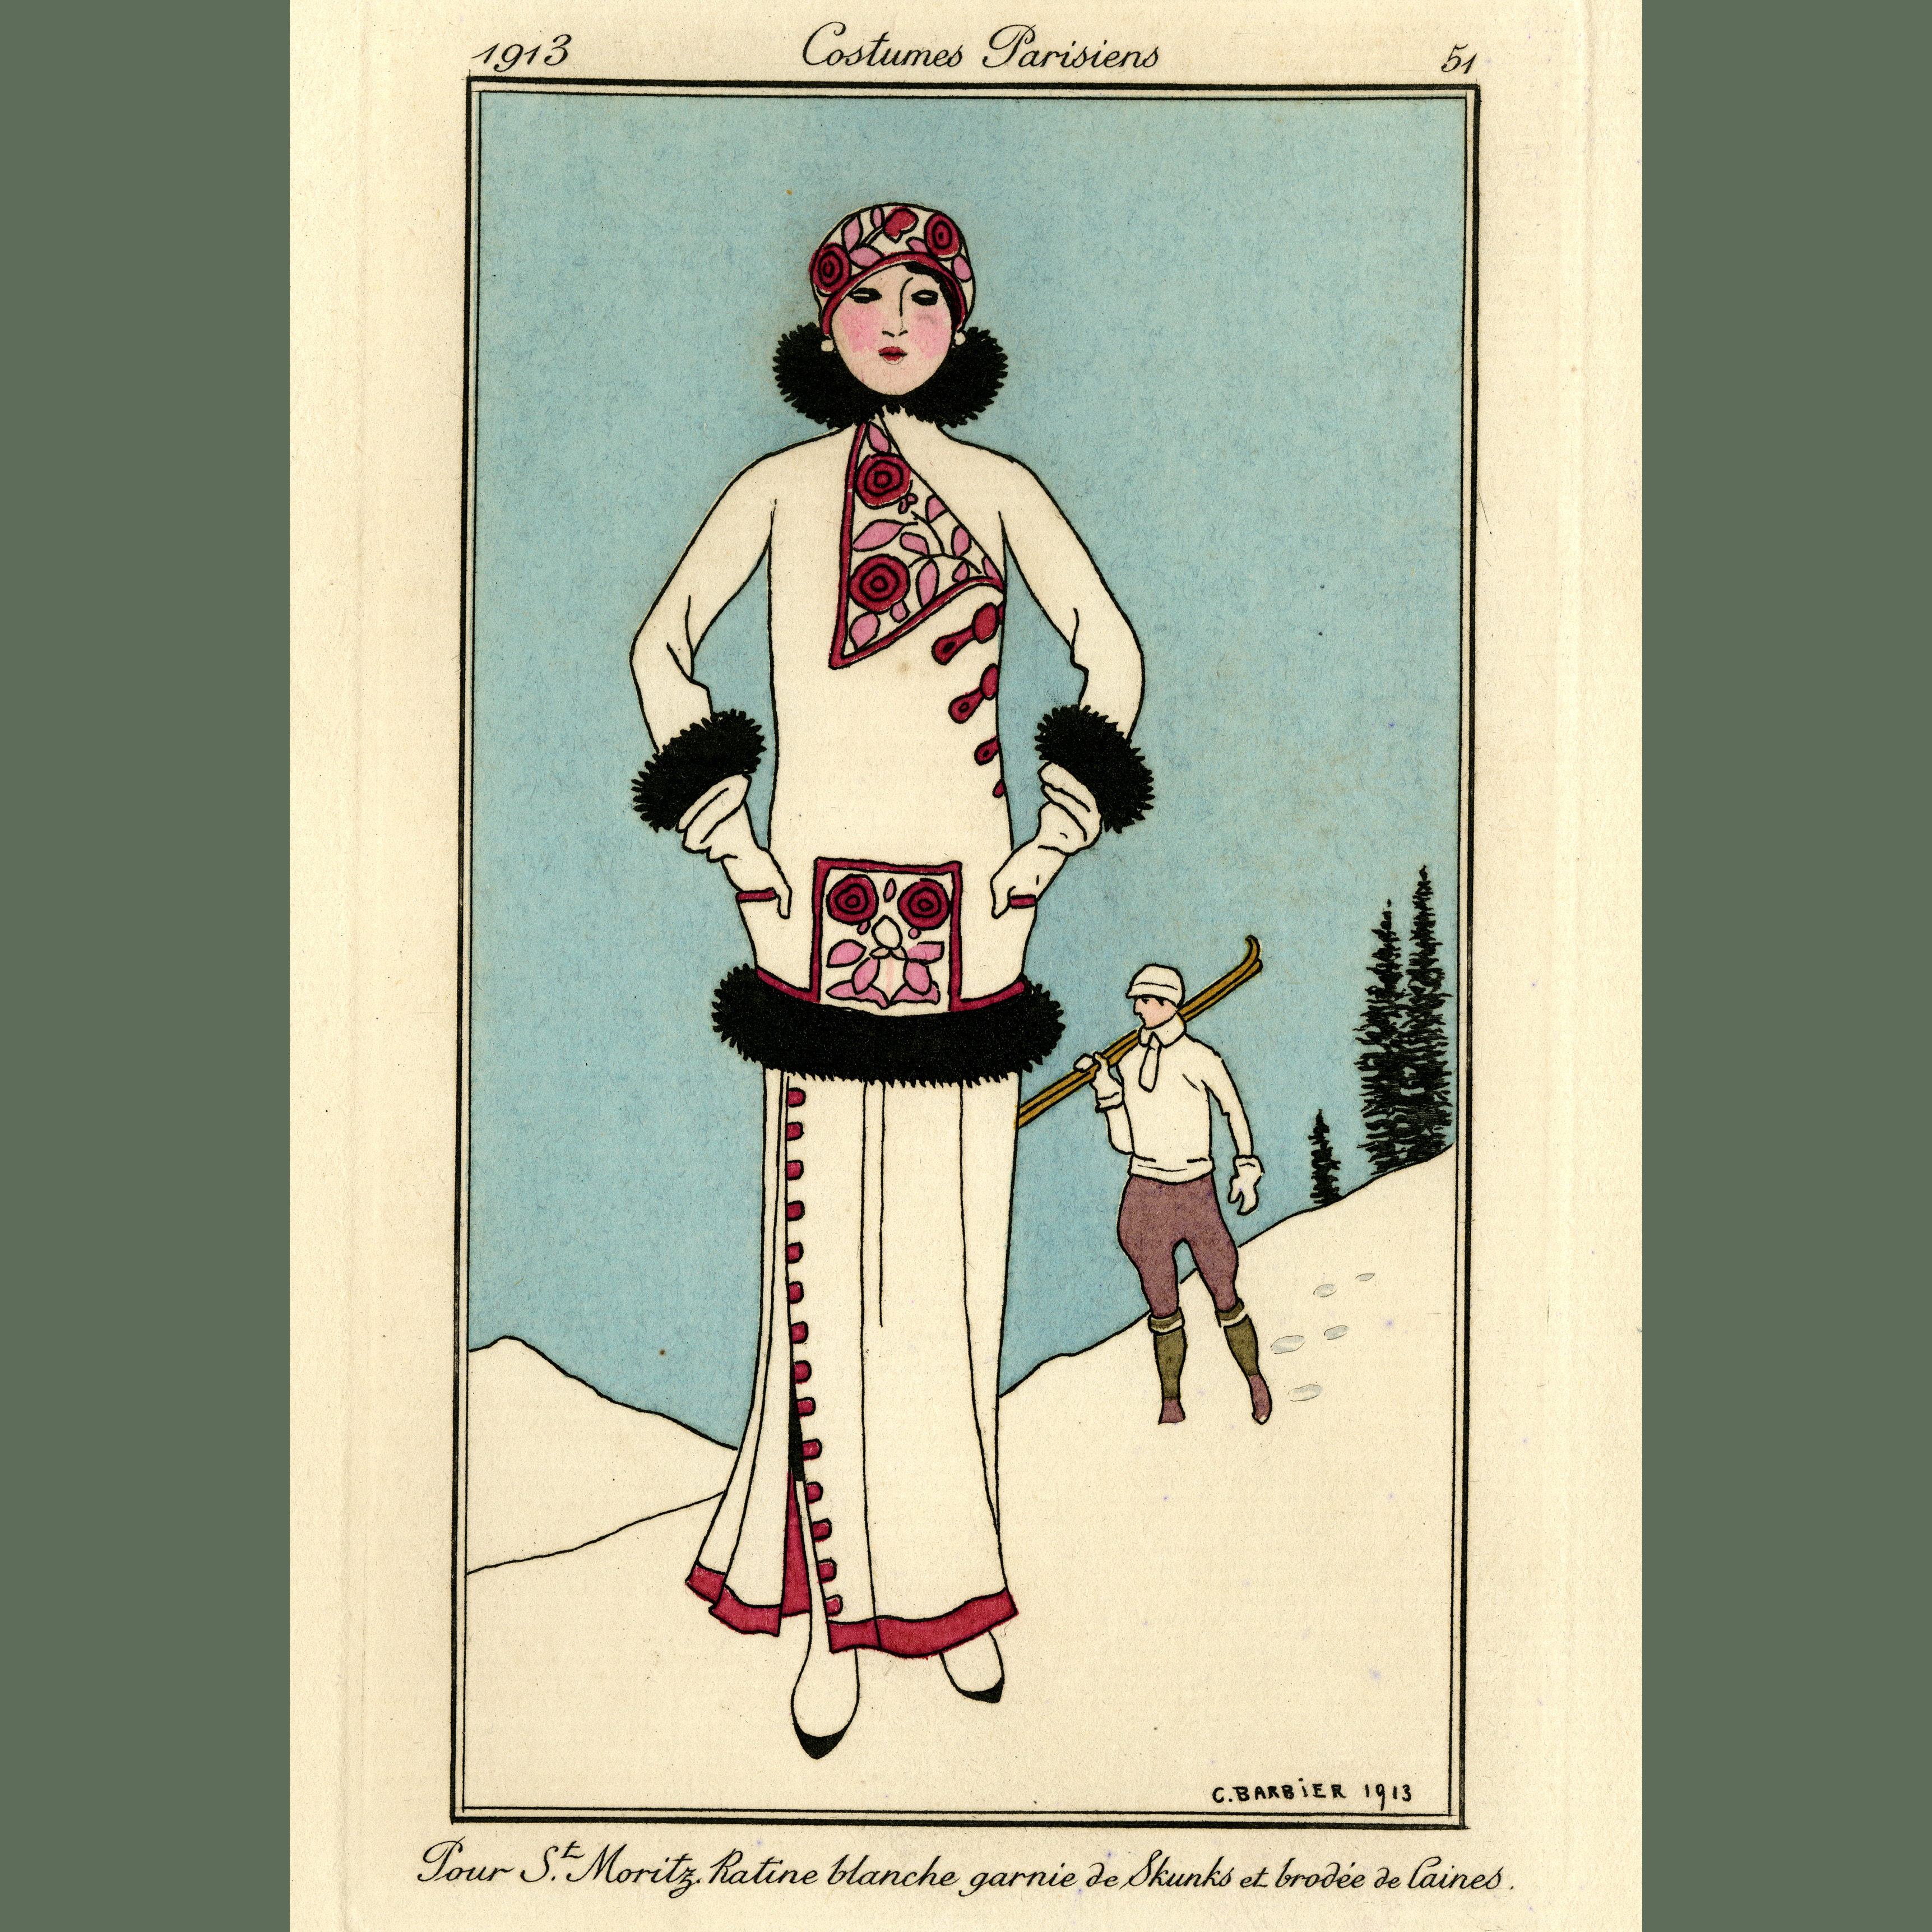 French fashion plate of a woman on a ski slope in a white dress with black fur trin and purple embroidery and buttons